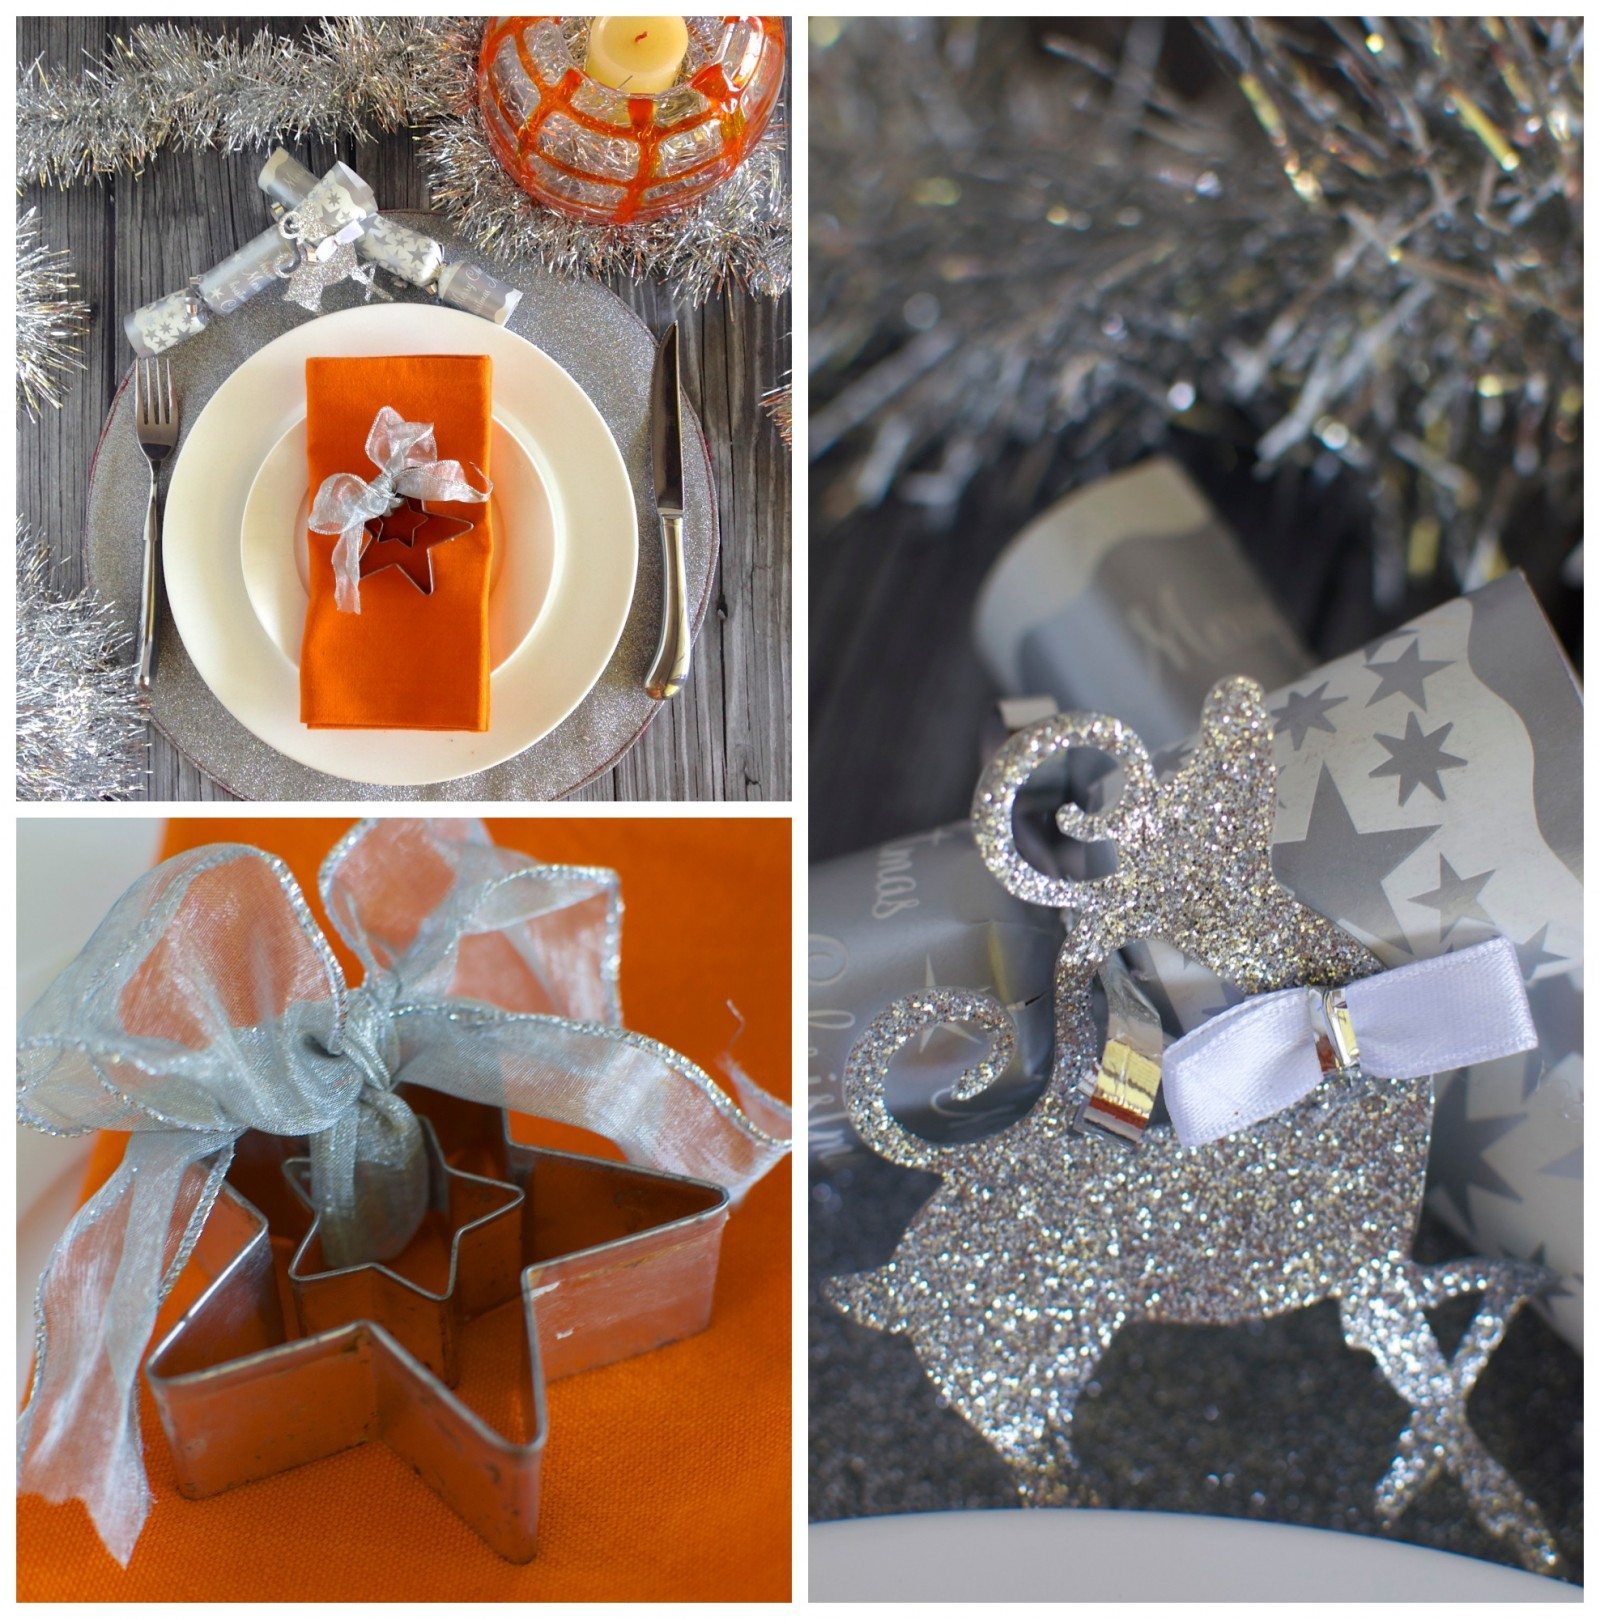 15 ideas to decorate your Christmas table